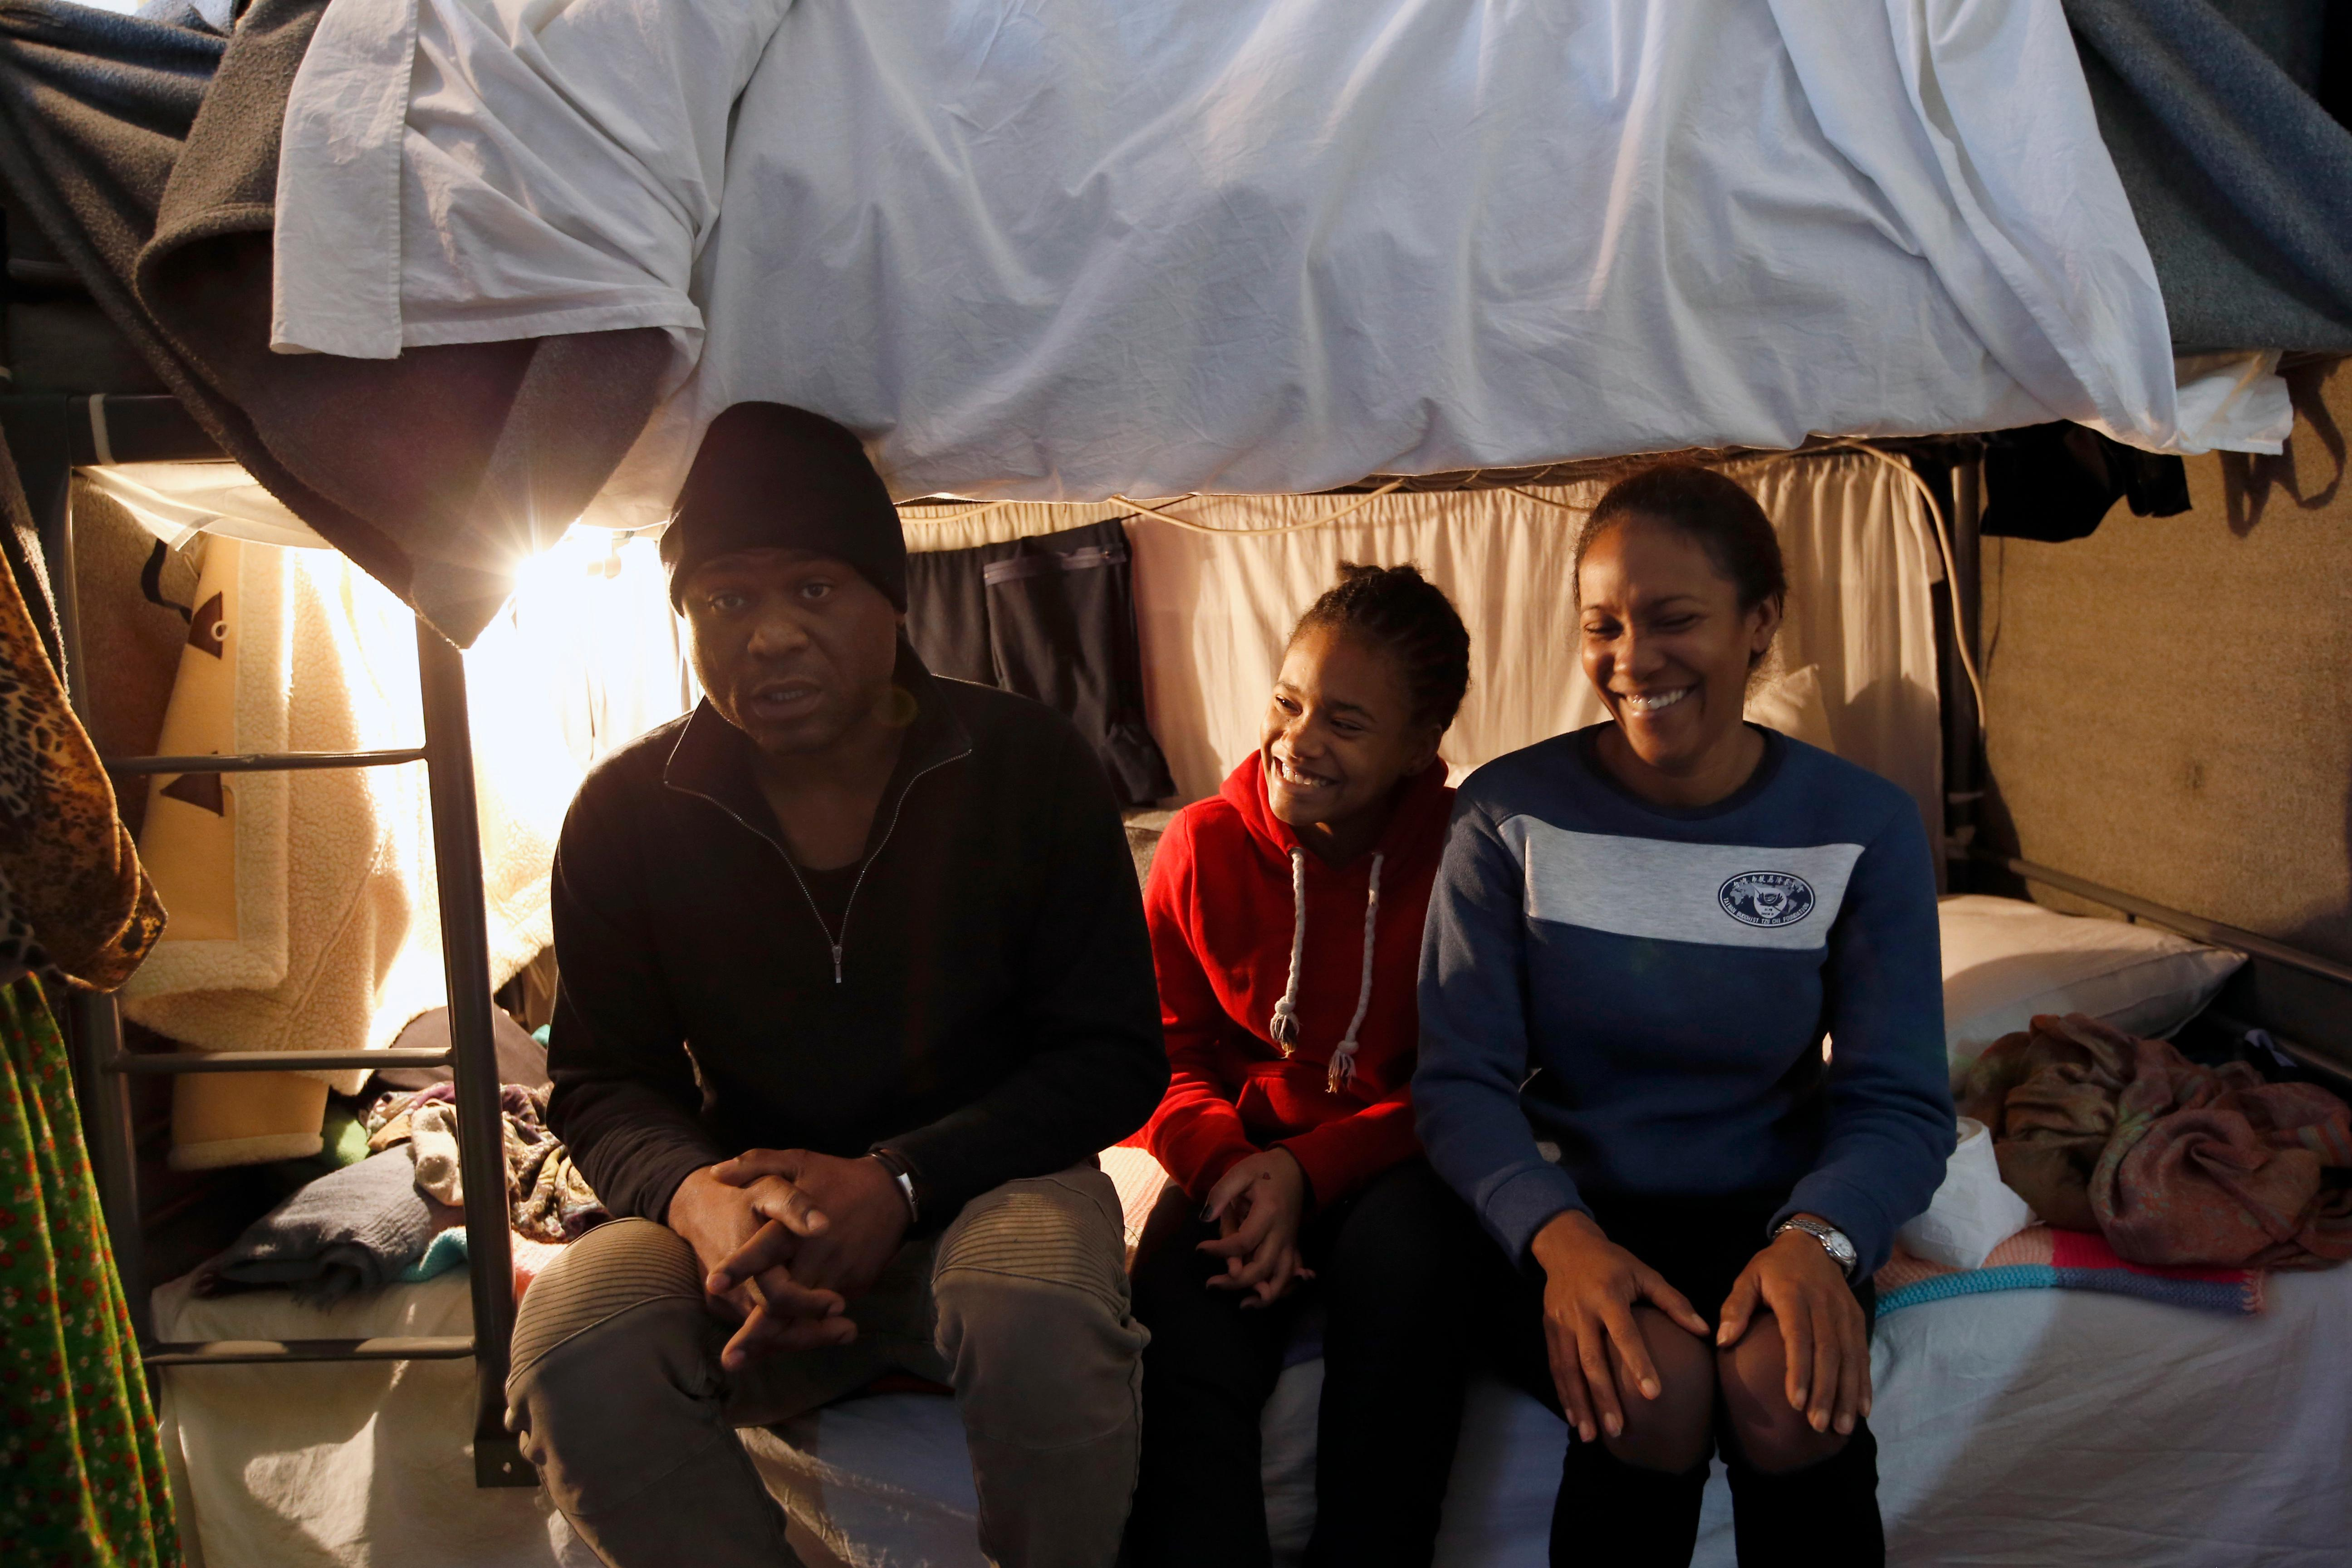 A Cuban migrant Michael Amor, left, with his wife Ingrid, right, and daughter Samira sitting in their room in the center for refugees in Sot, about 100 km west from Belgrade, Serbia, Thursday, Feb. 1, 2018.  Far away from sandy beaches and a balmy Caribbean breeze, a Cuban family huddles together in a cramped room of a Serbian refugee center, trying to figure out what to do next. They are part of an unlikely influx of Cuban migrants to the Balkans that began in 2015 before neighboring European Union countries sealed off their borders. Most Cuban migrants in Serbia say they had to make the trip after the U.S. revoked Cubans' special migration status last year.(AP Photo/Darko Vojinovic)